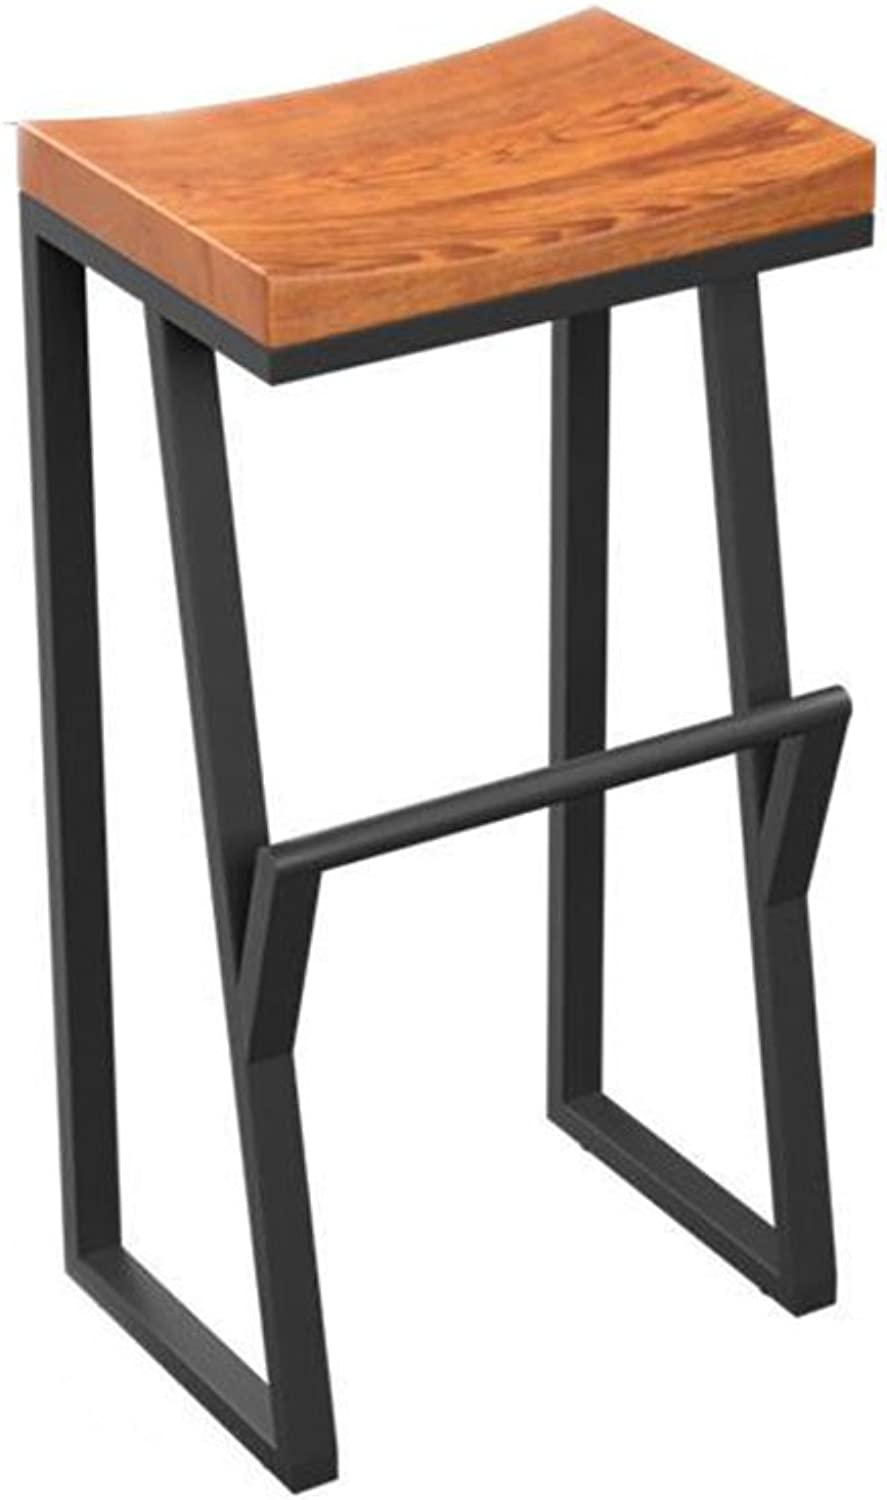 C-J-Xin Vintage Bar Stools, Iron Art High Stool Solid Wood Bar Chair Cafe Household Front Bench Leisure Stool Height 63-85CM Novel Style (Size   38  36  70CM)